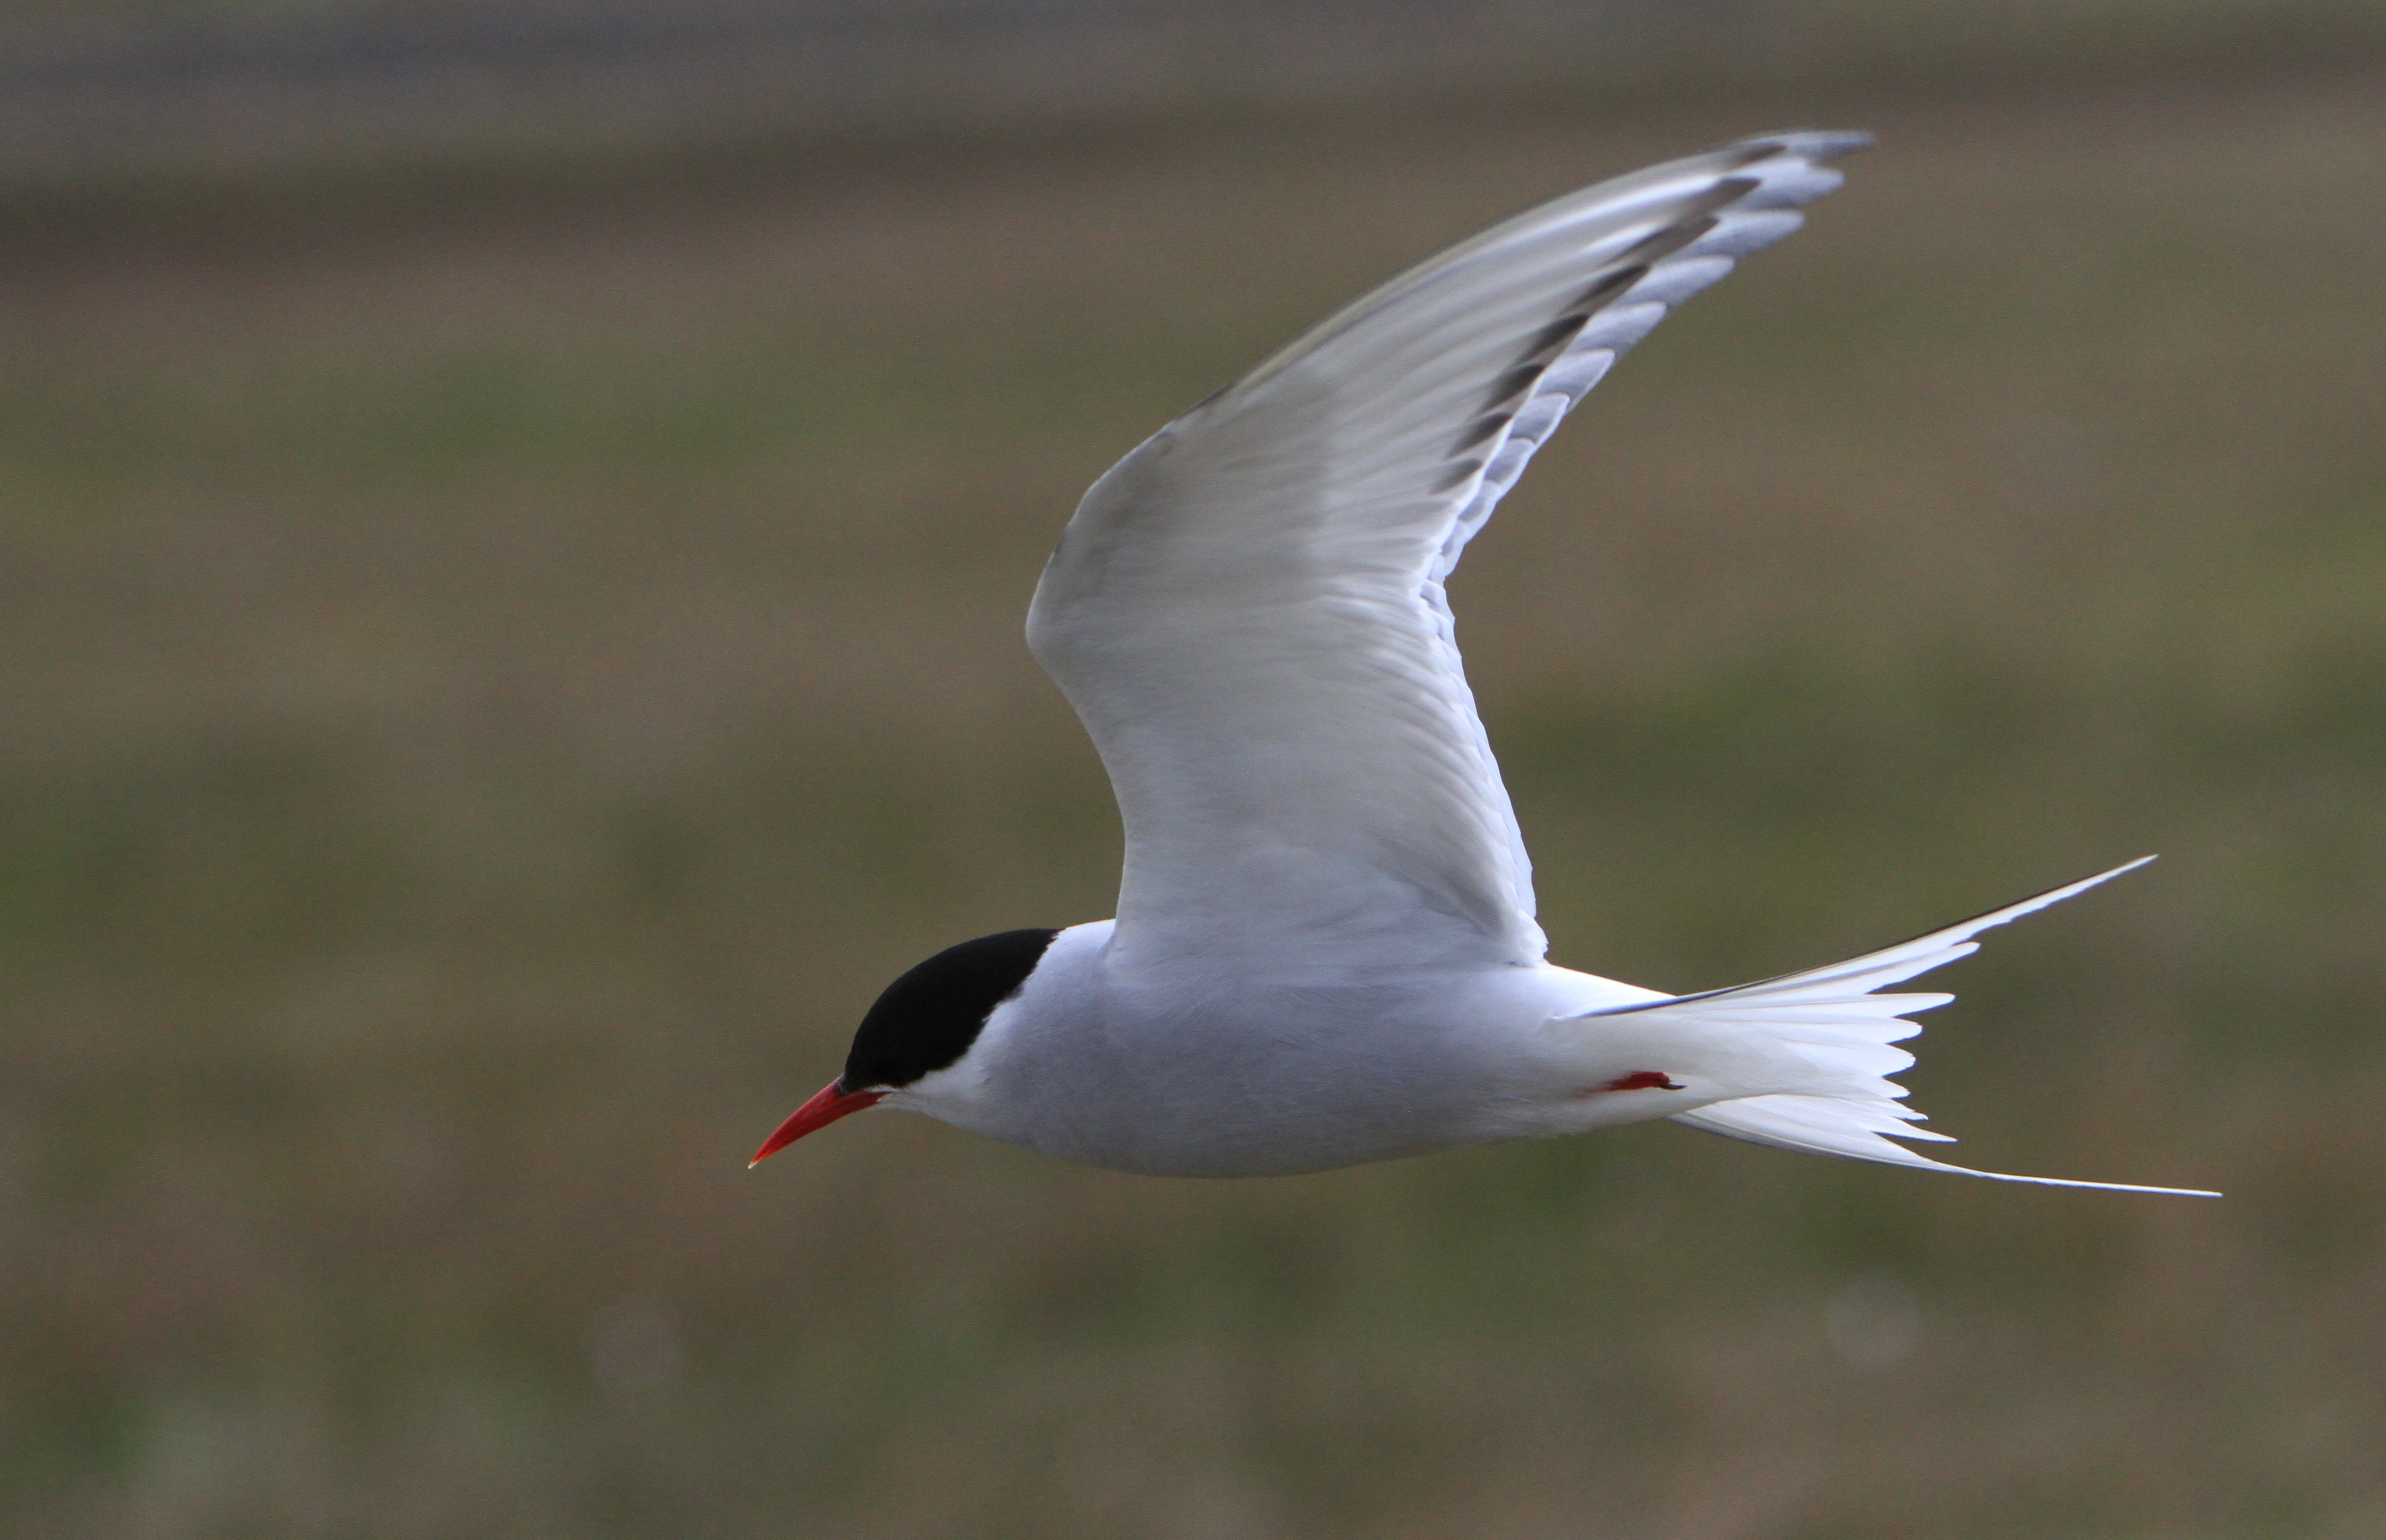 ARCTIC-TERN arctic tern bird wallpaper | 4685x3024 ...